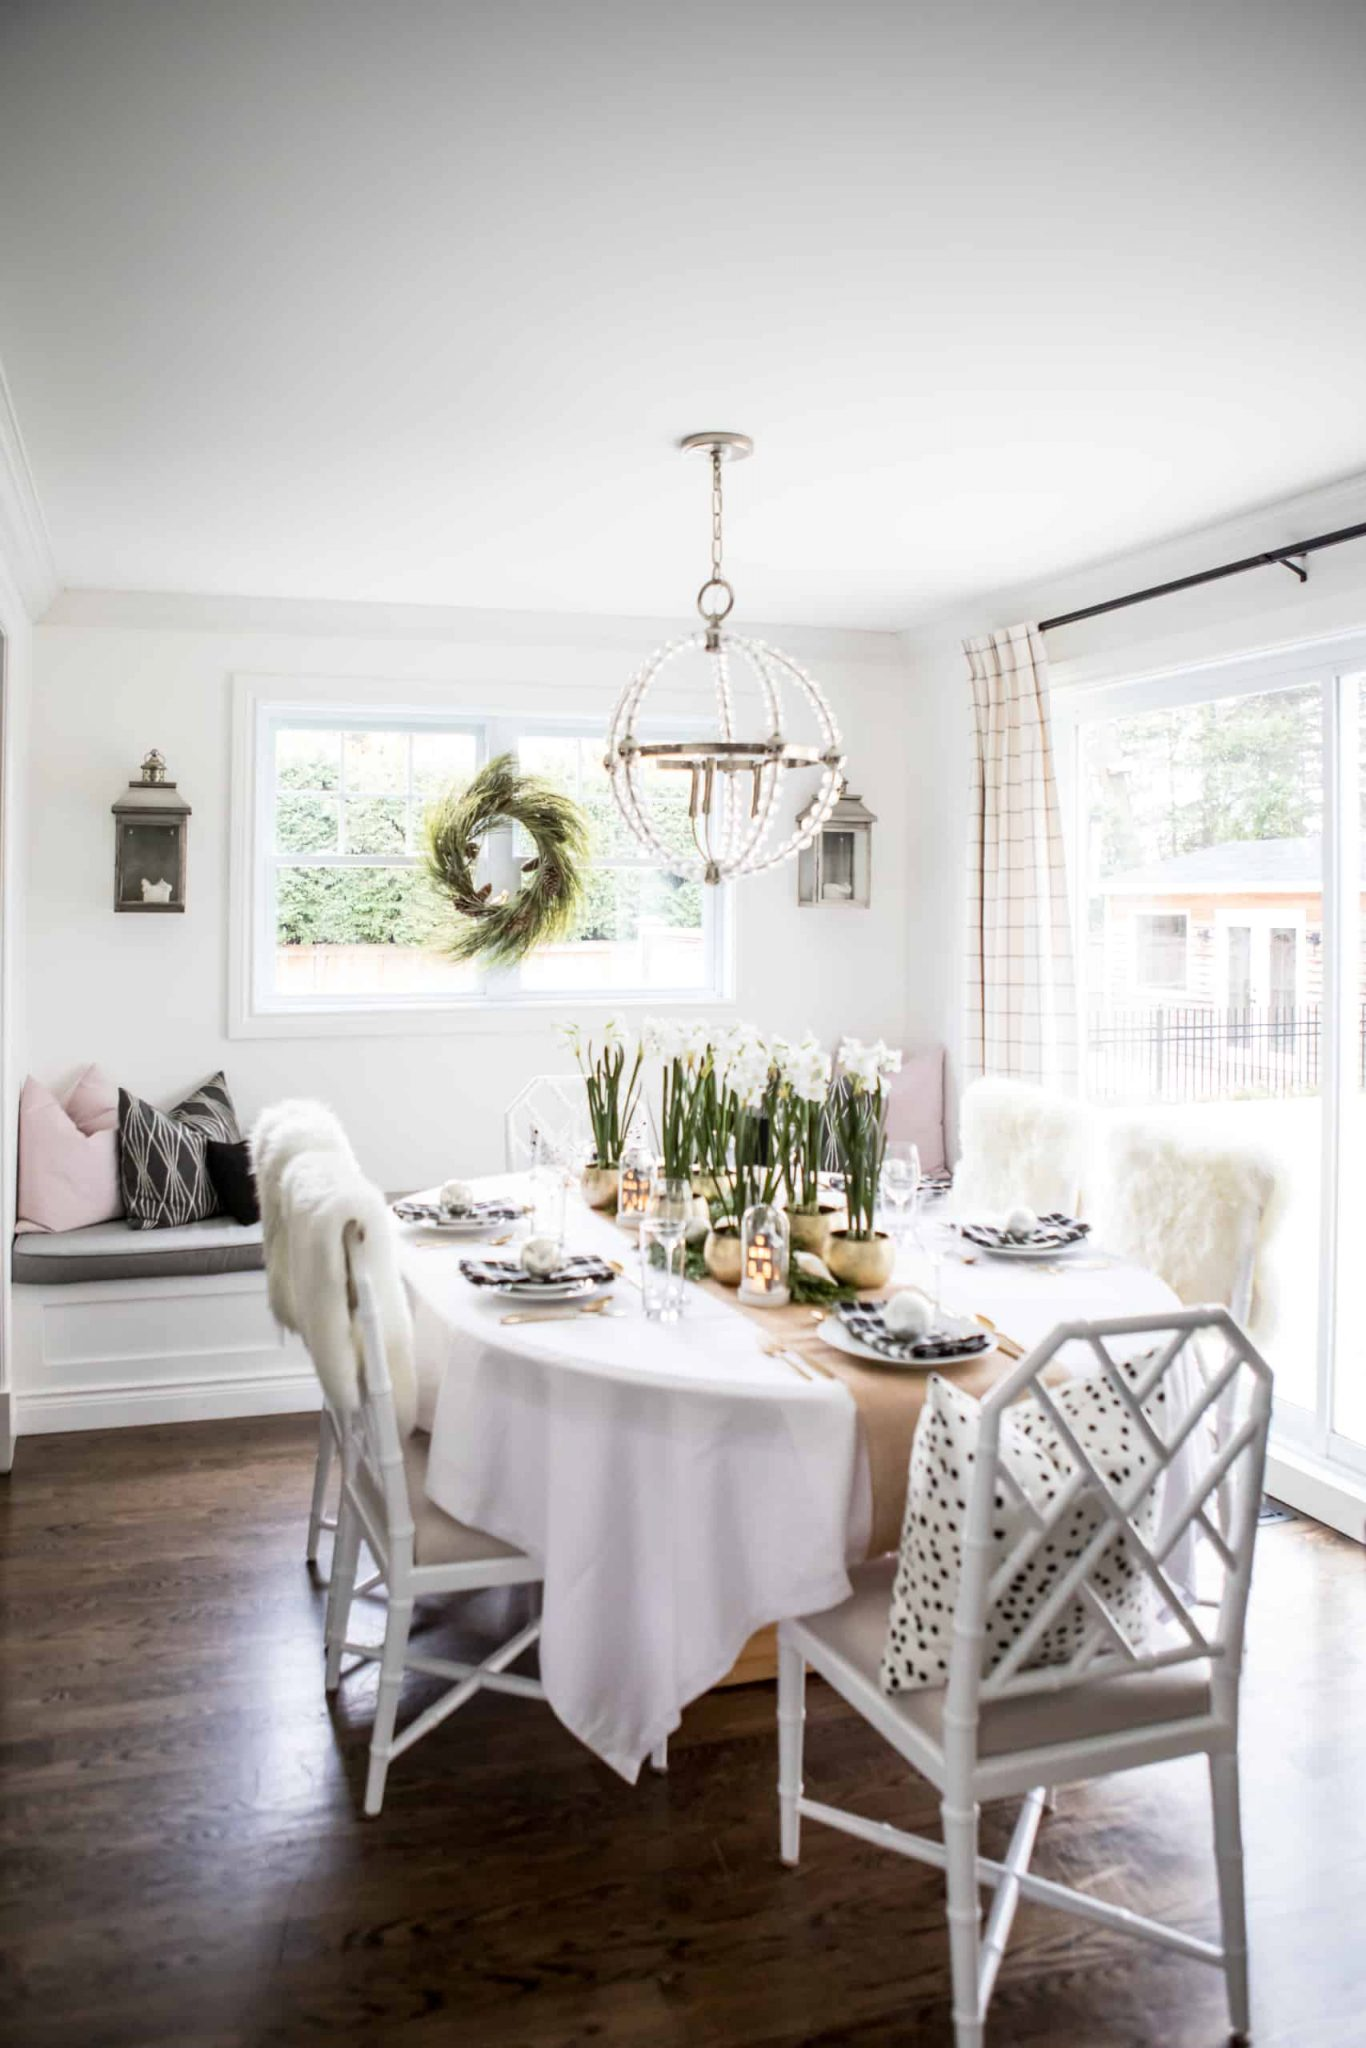 Modern dining room containing flowers in the middle of the table